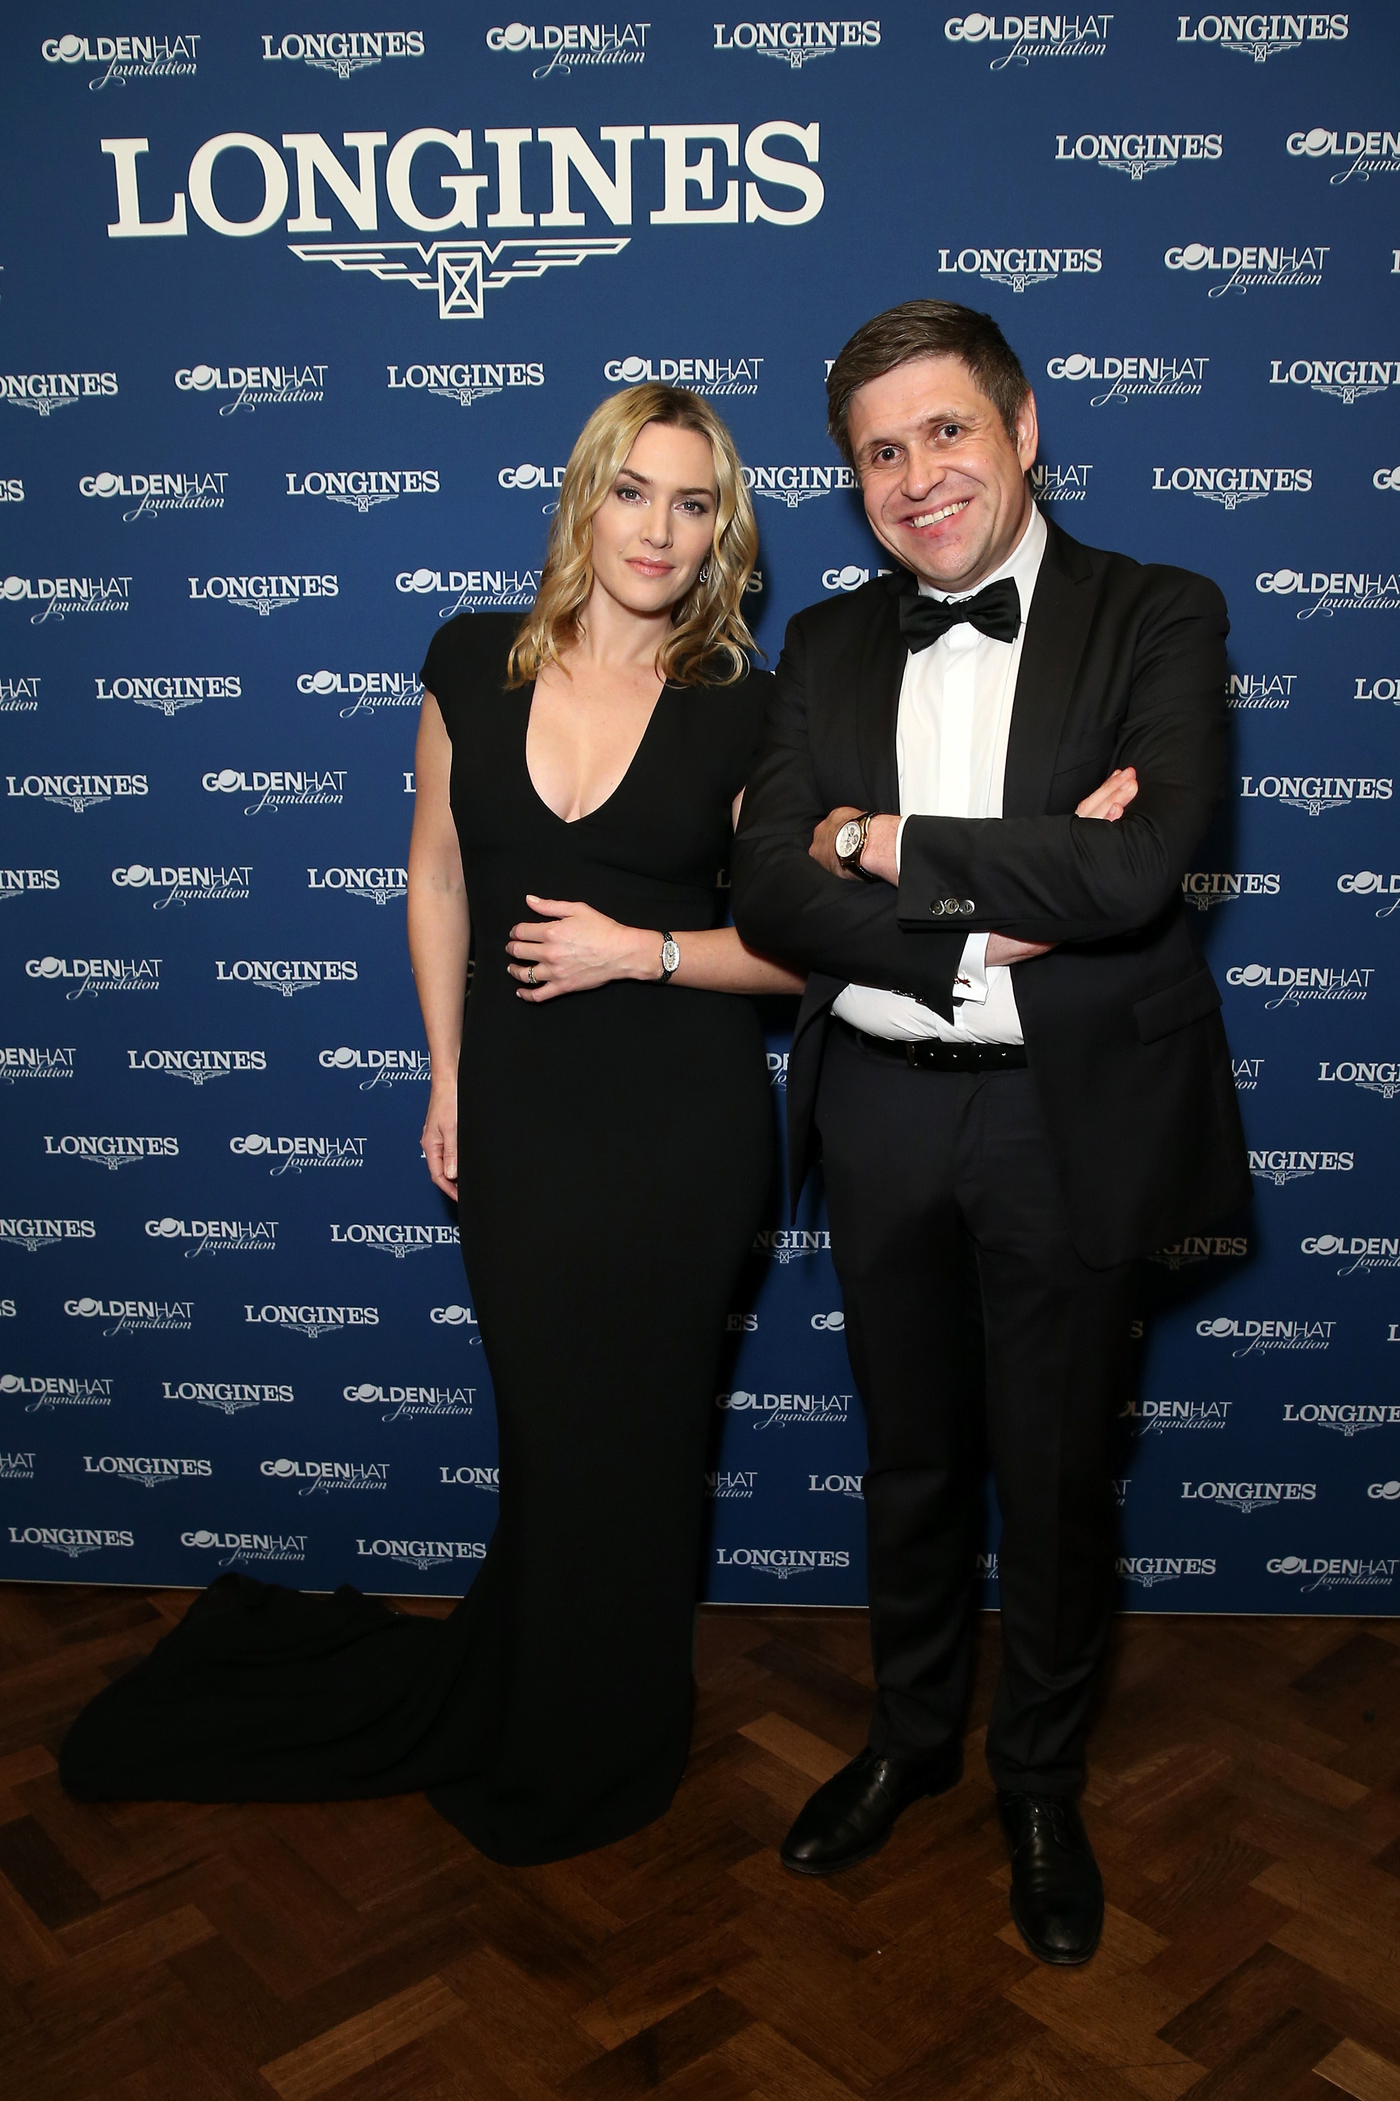 Longines Corporate Event: Longines celebrates its new collaboration with the Golden Hat Foundation in the presence of Ambassador of Elegance Kate Winslet 2